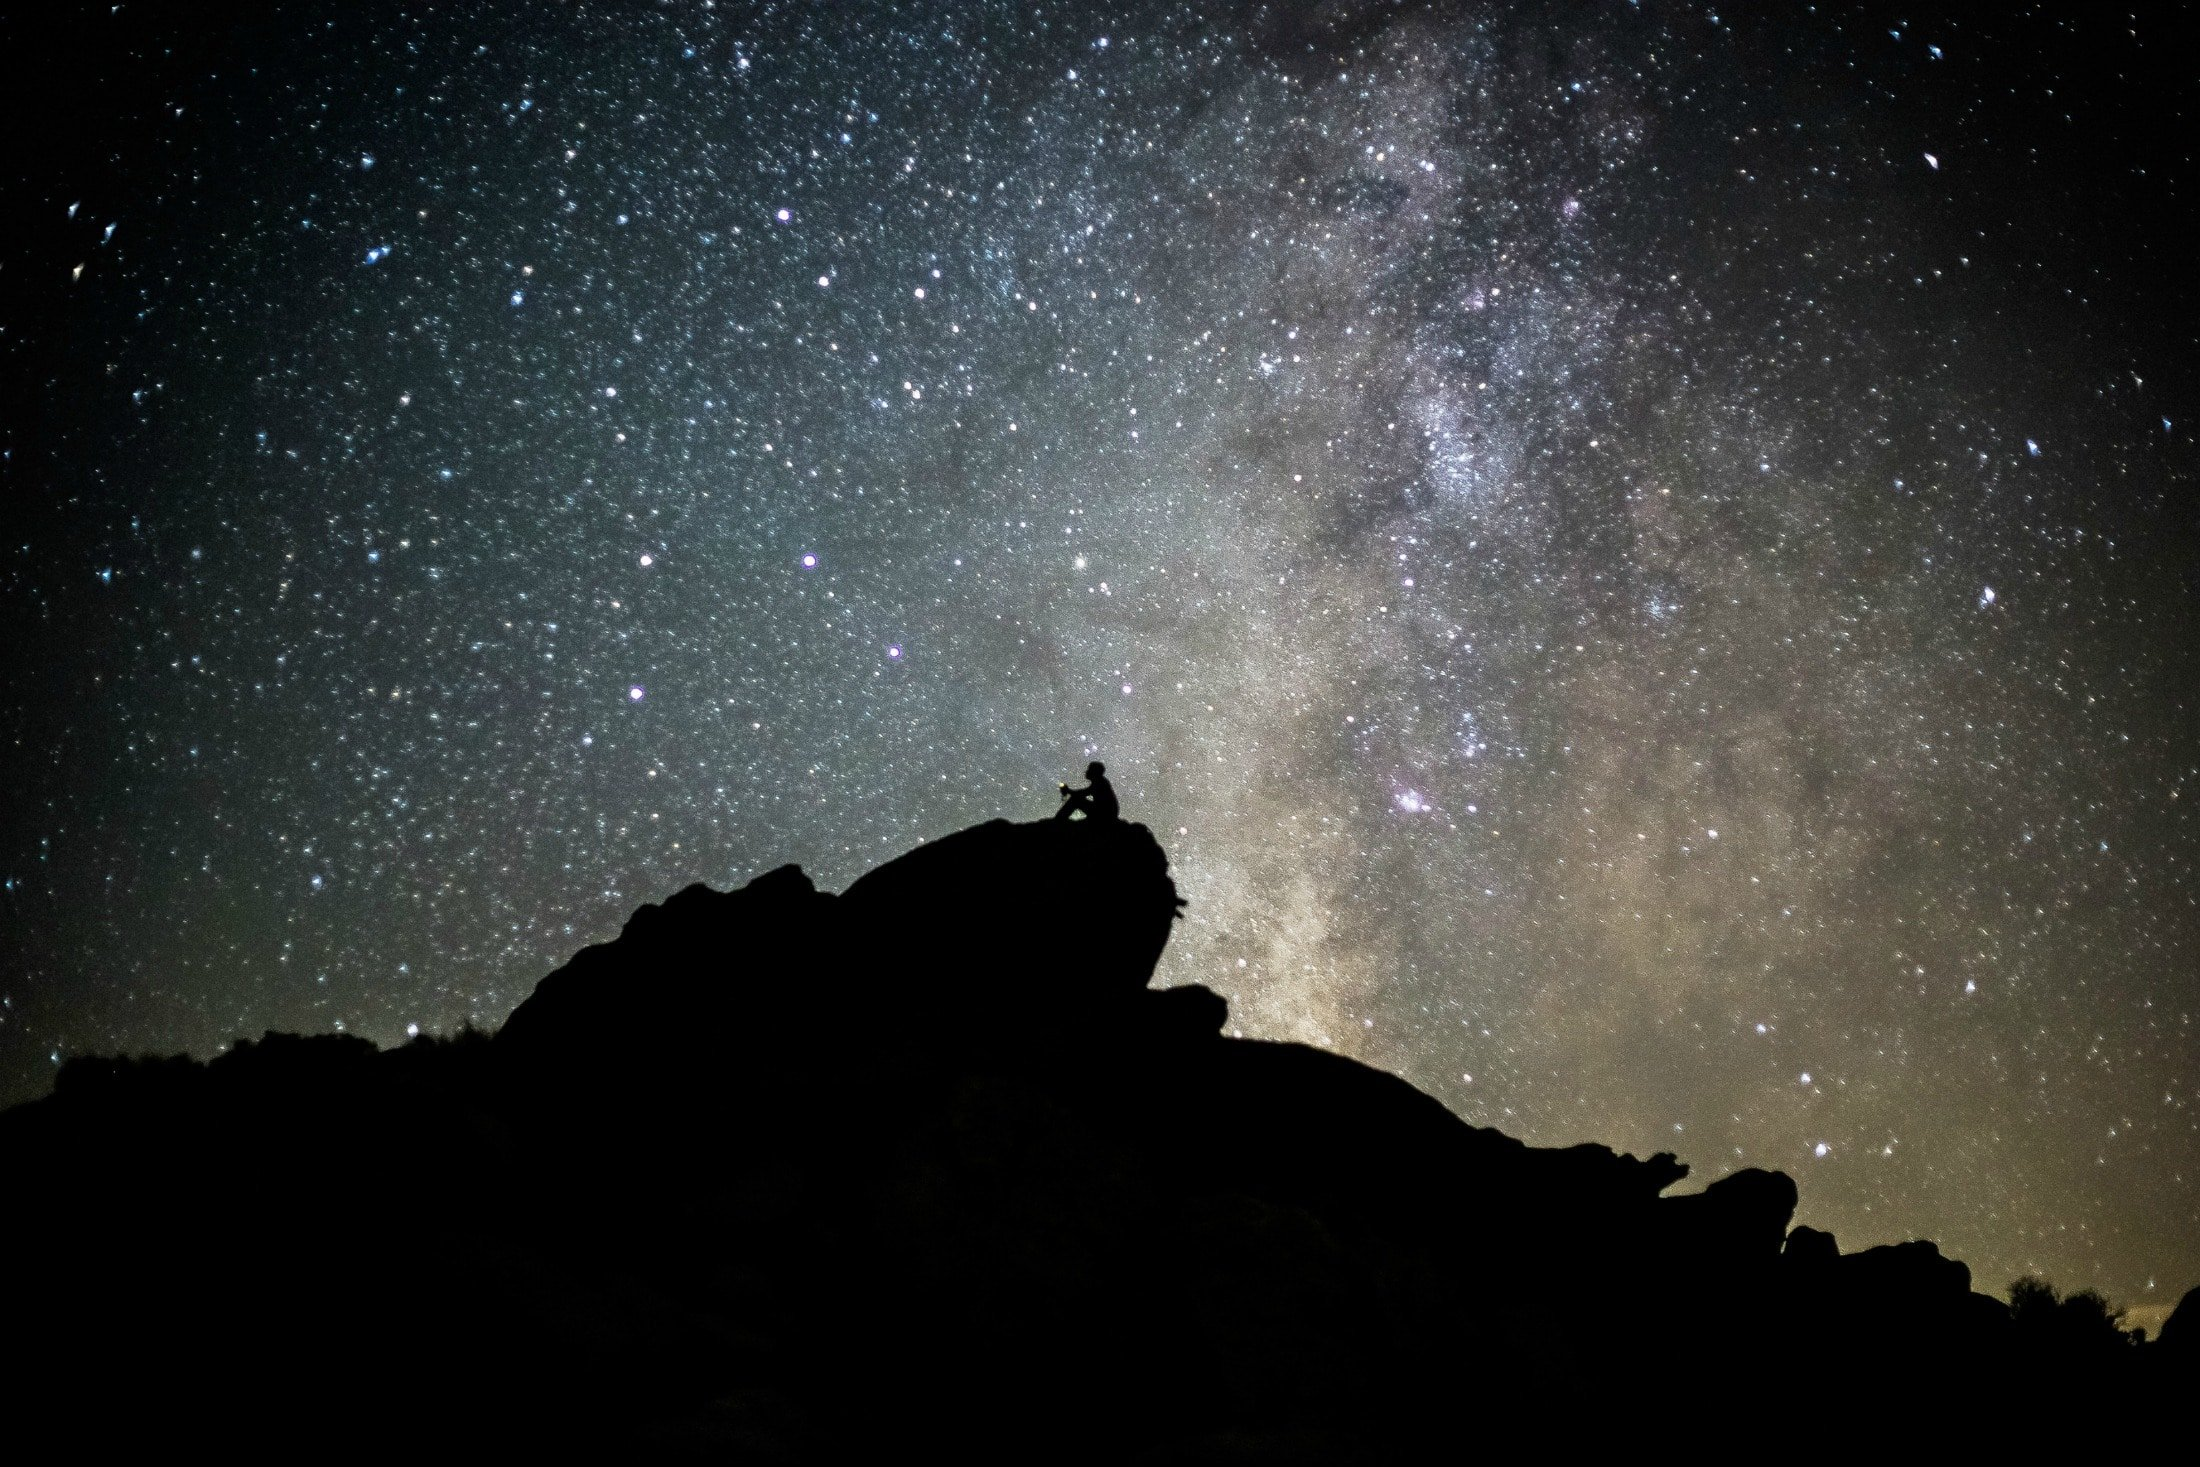 Stargazing is one of the very popular things to do at Anza-Borrego Desert State Park